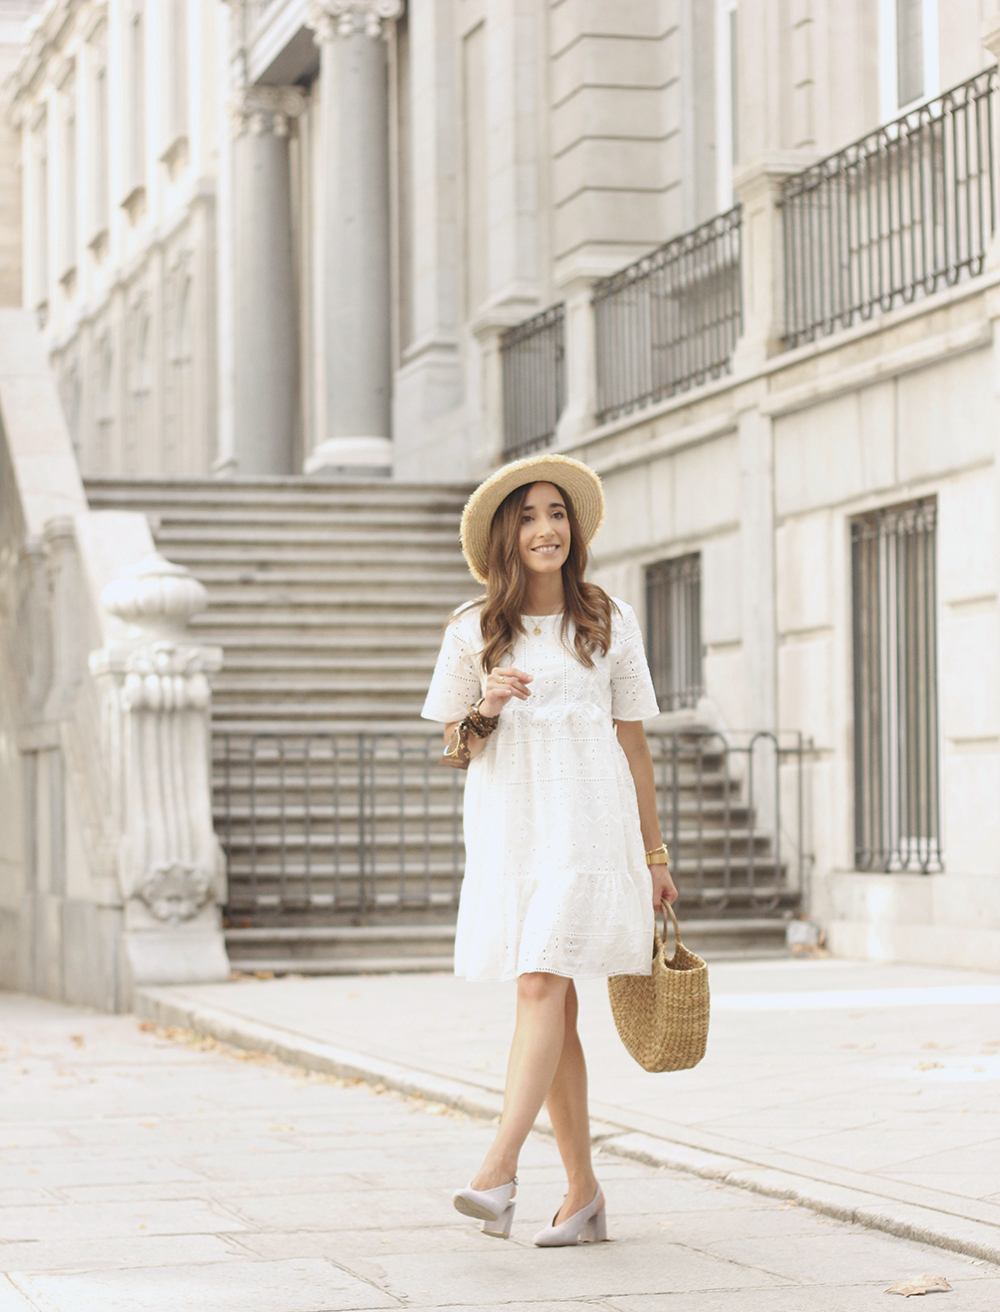 White summer dress canotier street style outfit 20195